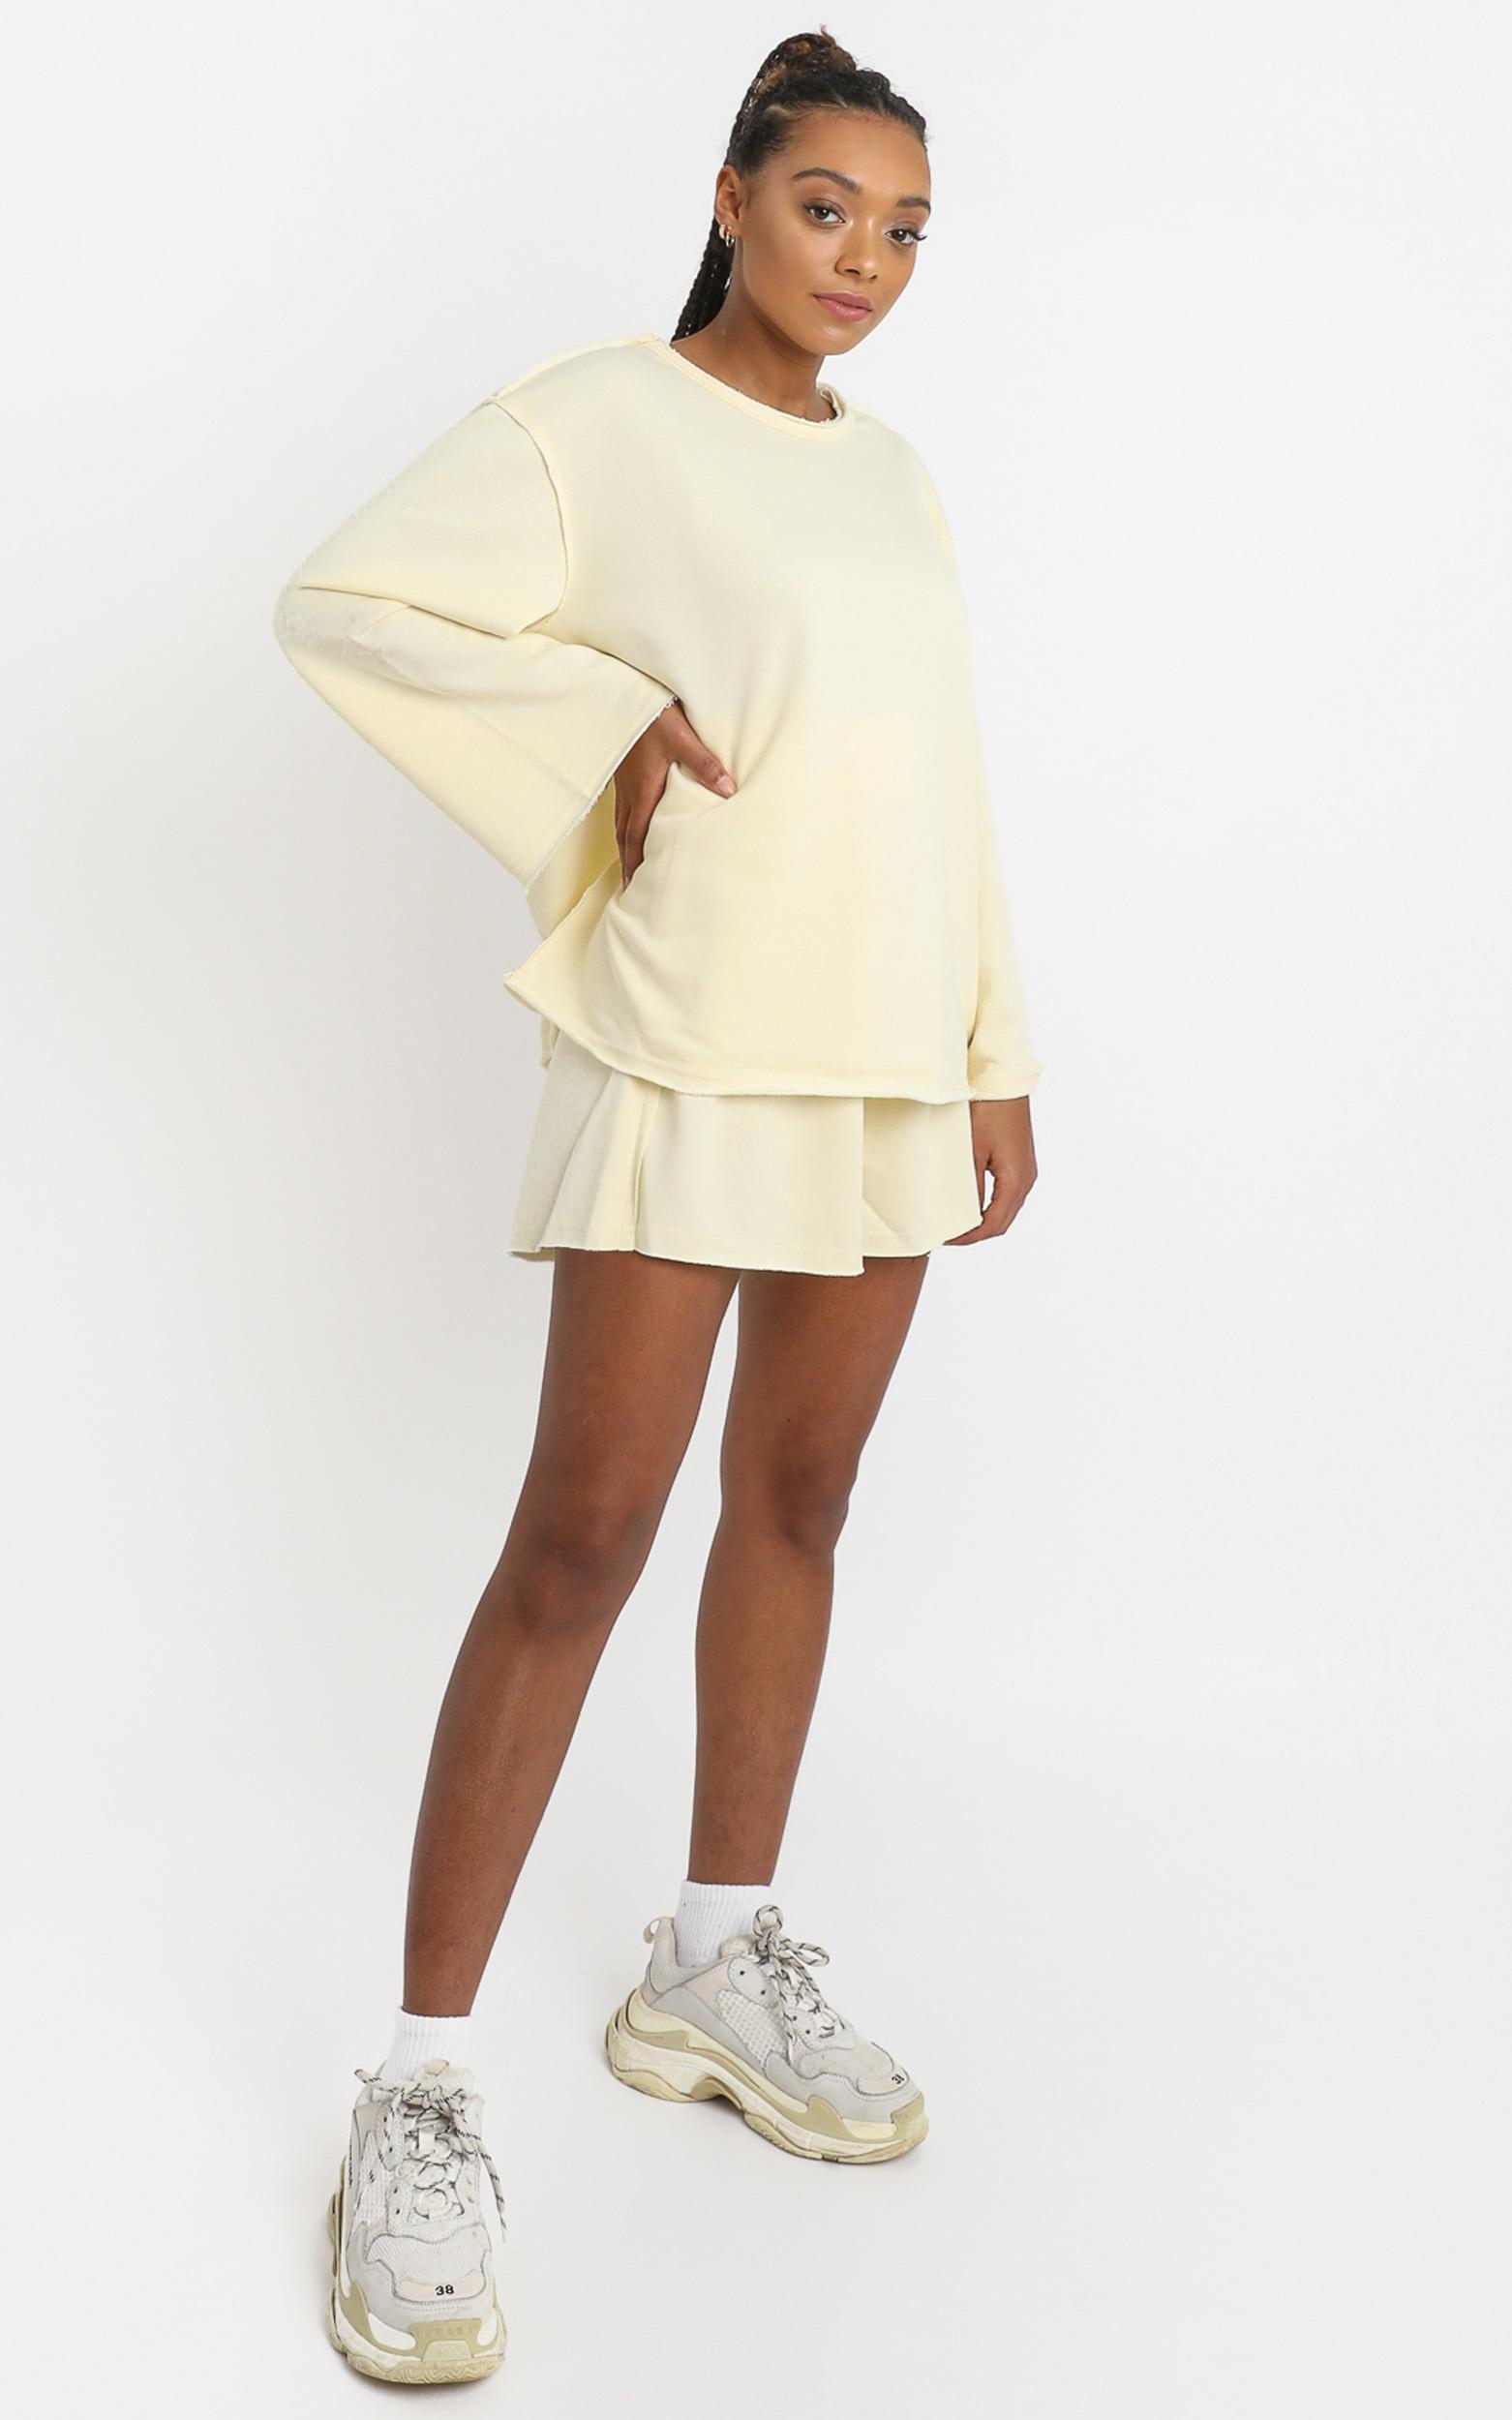 Long Lost Sweatshirt in Pastel Yellow - 6 (XS), Yellow, hi-res image number null